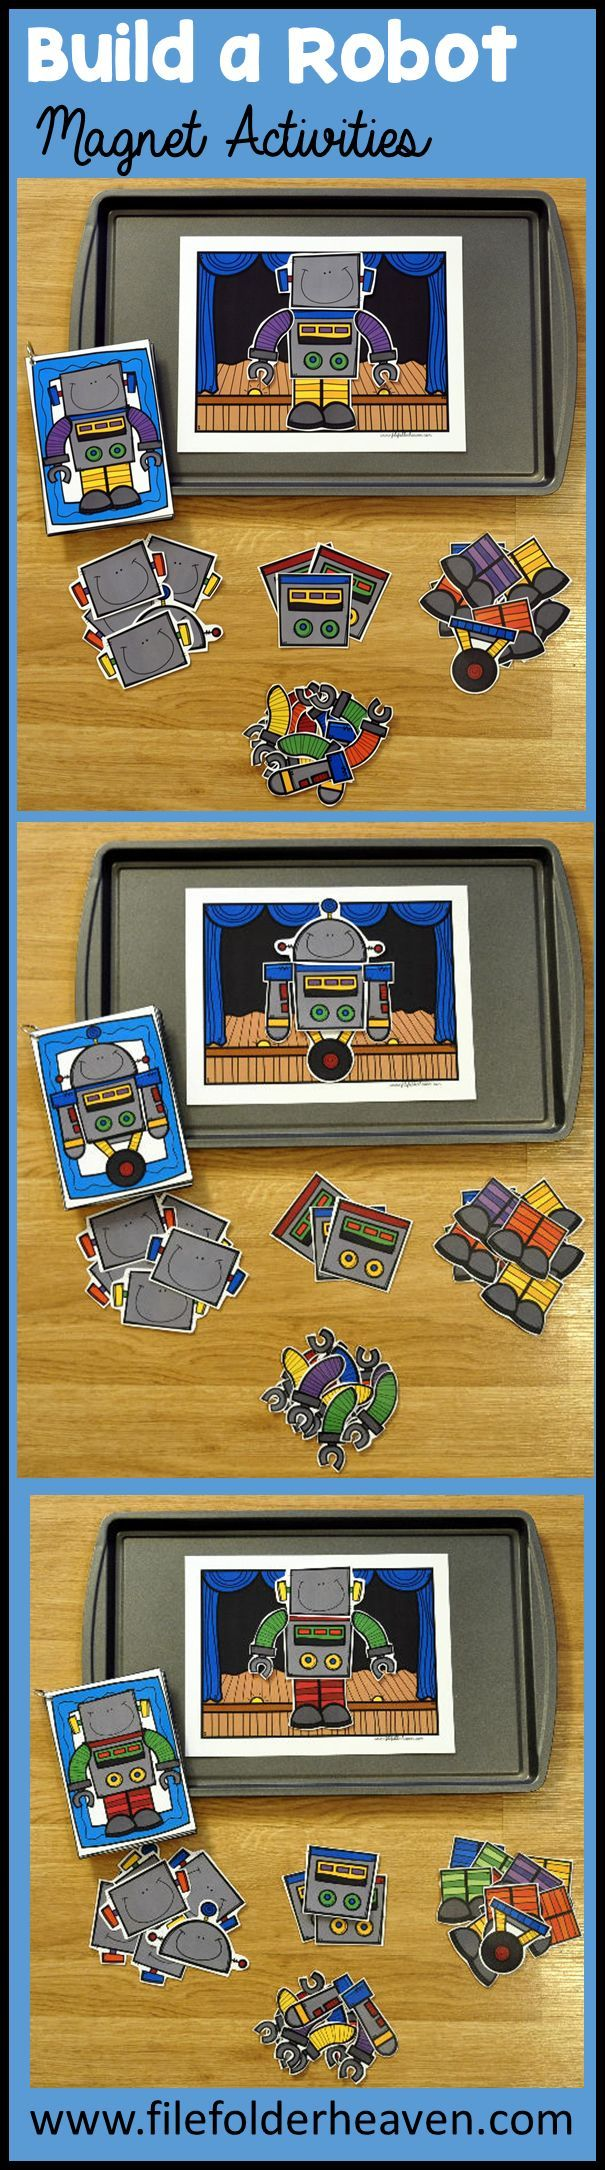 "These Build a Robot Center Activities can be set up as cookie sheet activities, a magnet center or completed as cut and glue activities. This activity includes: 1 background, 14 build a robot example cards, and a big set of ""build a robot"" building pieces for creative building (all in color).  In this activity, students work on visual discrimination skills, recognizing same and different, and replicating a model."